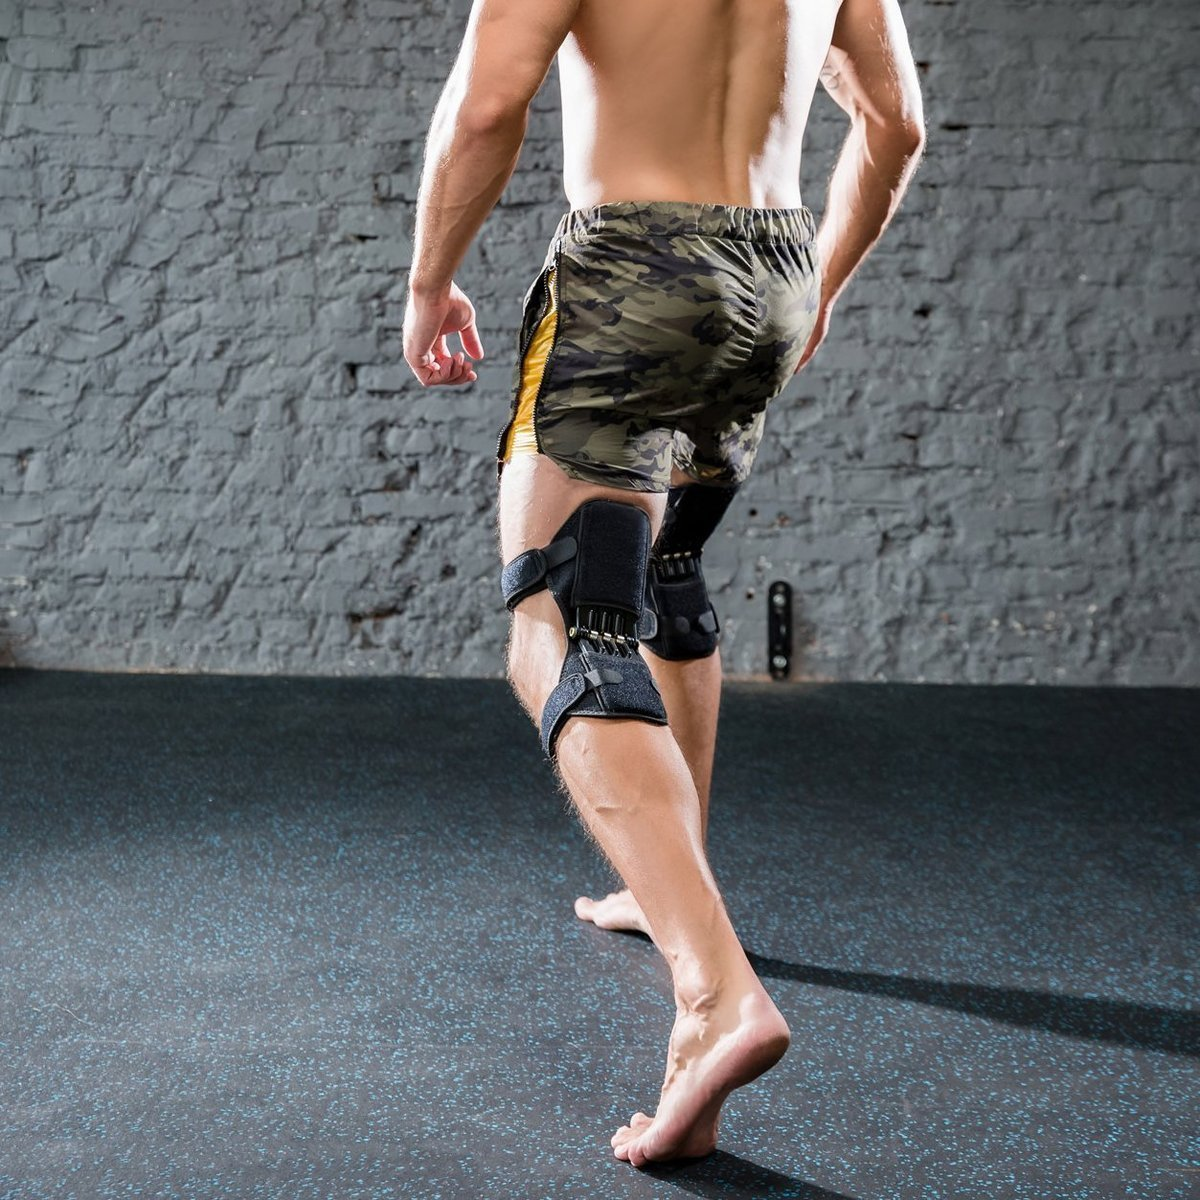 POWERKNEE™ JOINT SUPPORT (PAIR)